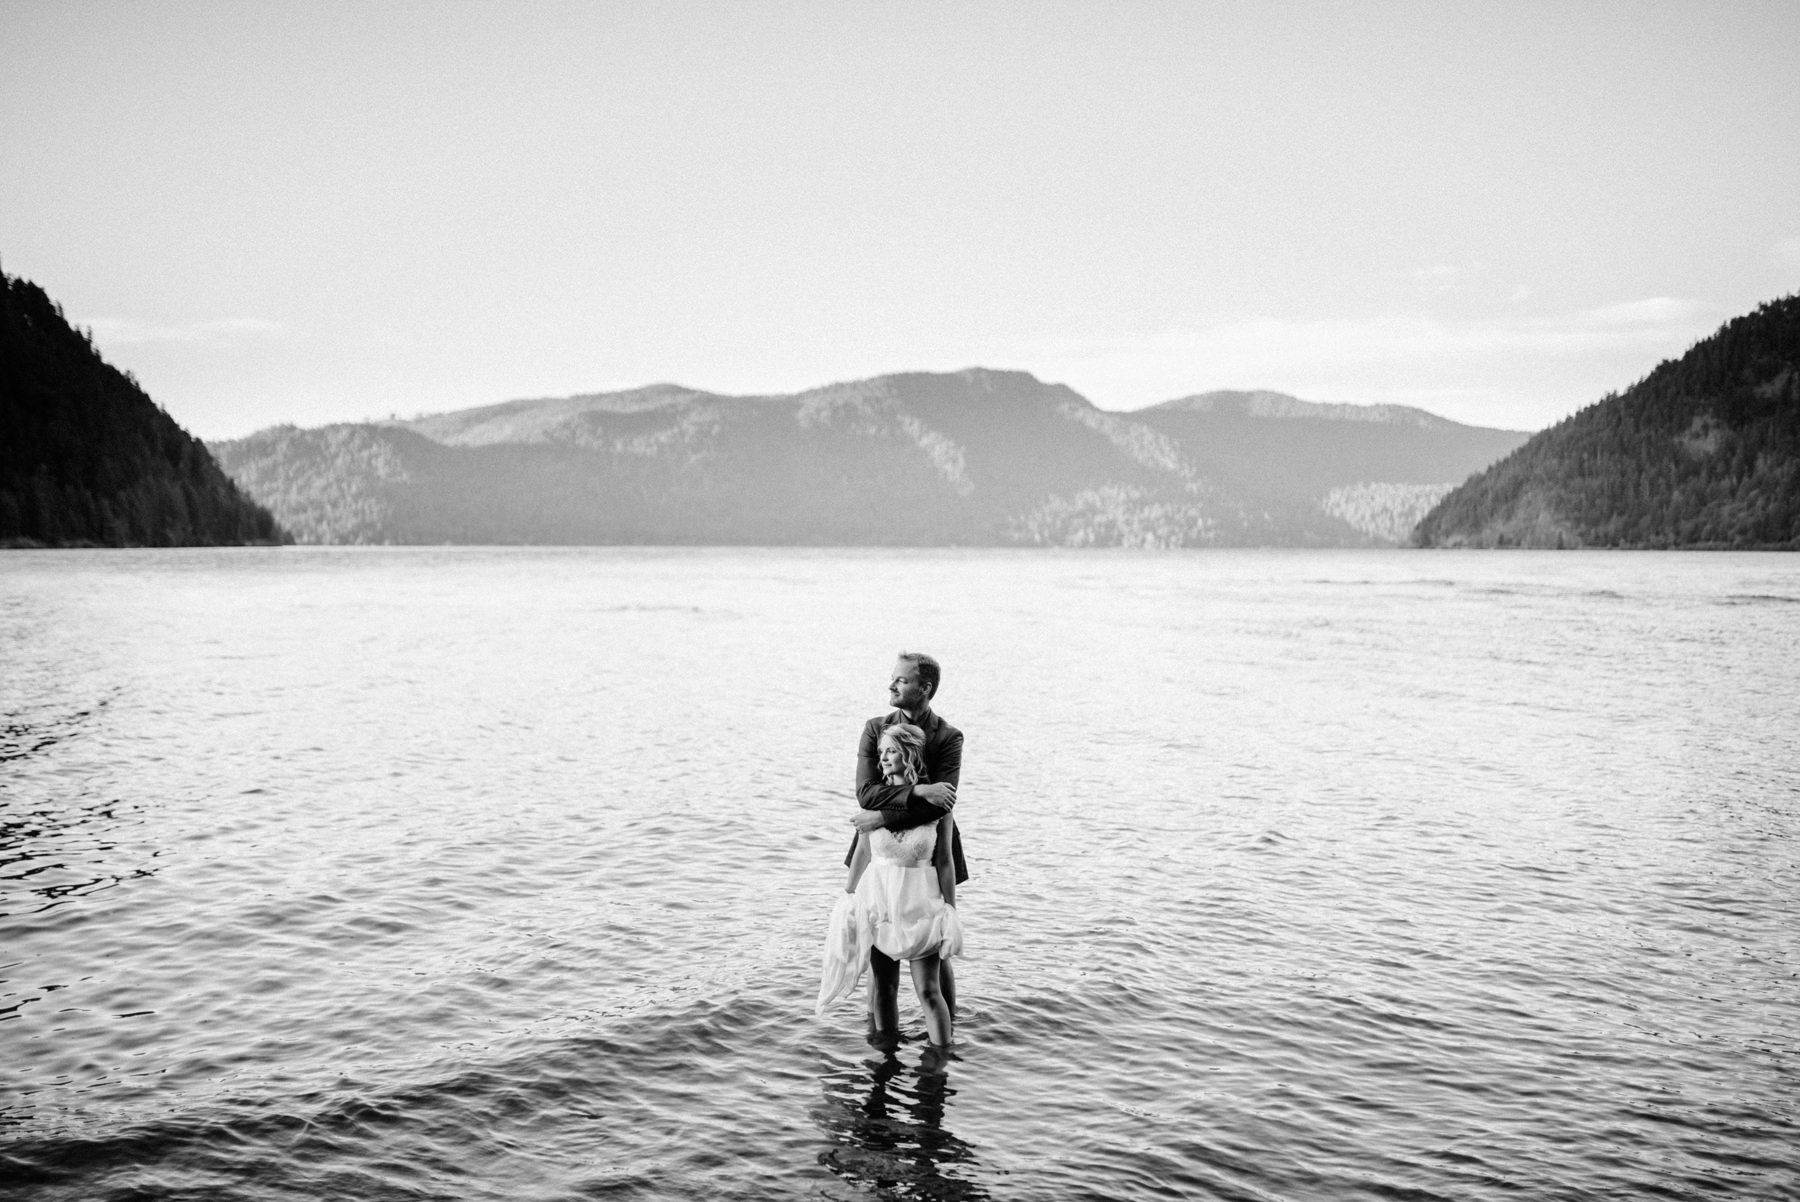 185-bride-and-groom-in-a-canoe-across-lake-crescent-by-nature-bridge.jpg